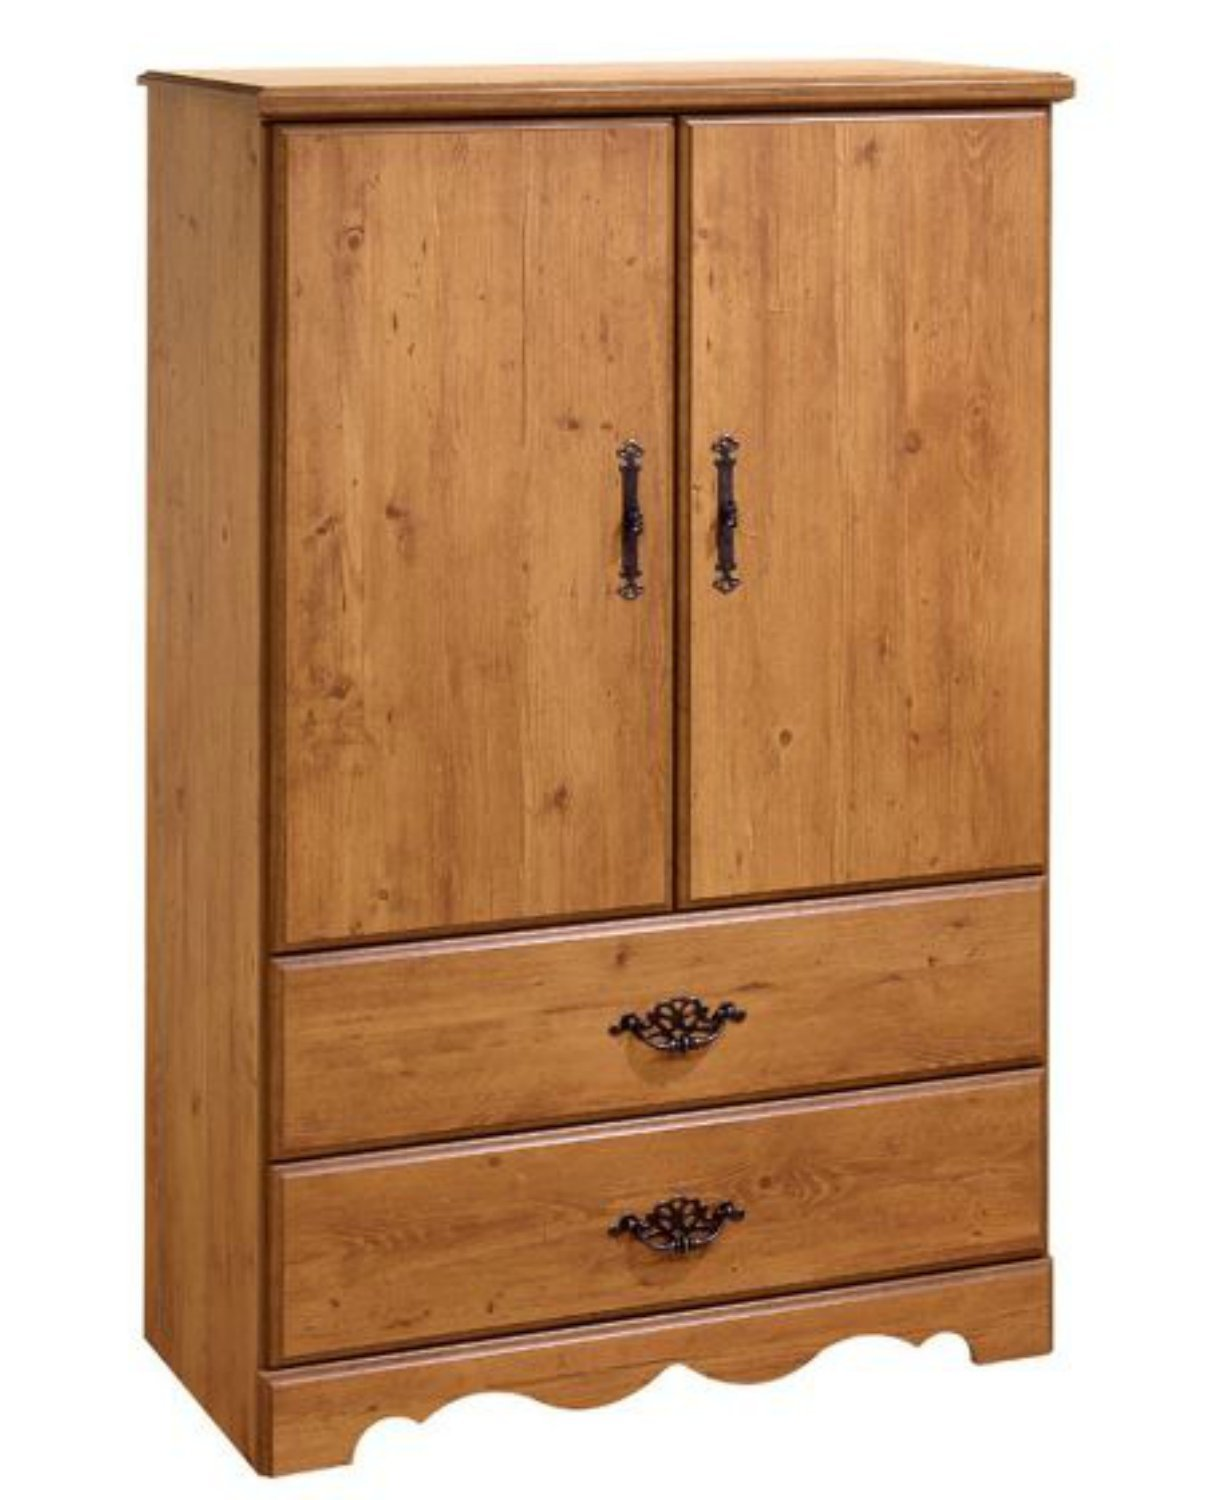 Stand Alone Wardrobe Closet | Cheap Wardrobe Closet | Closet Armoires Wardrobe